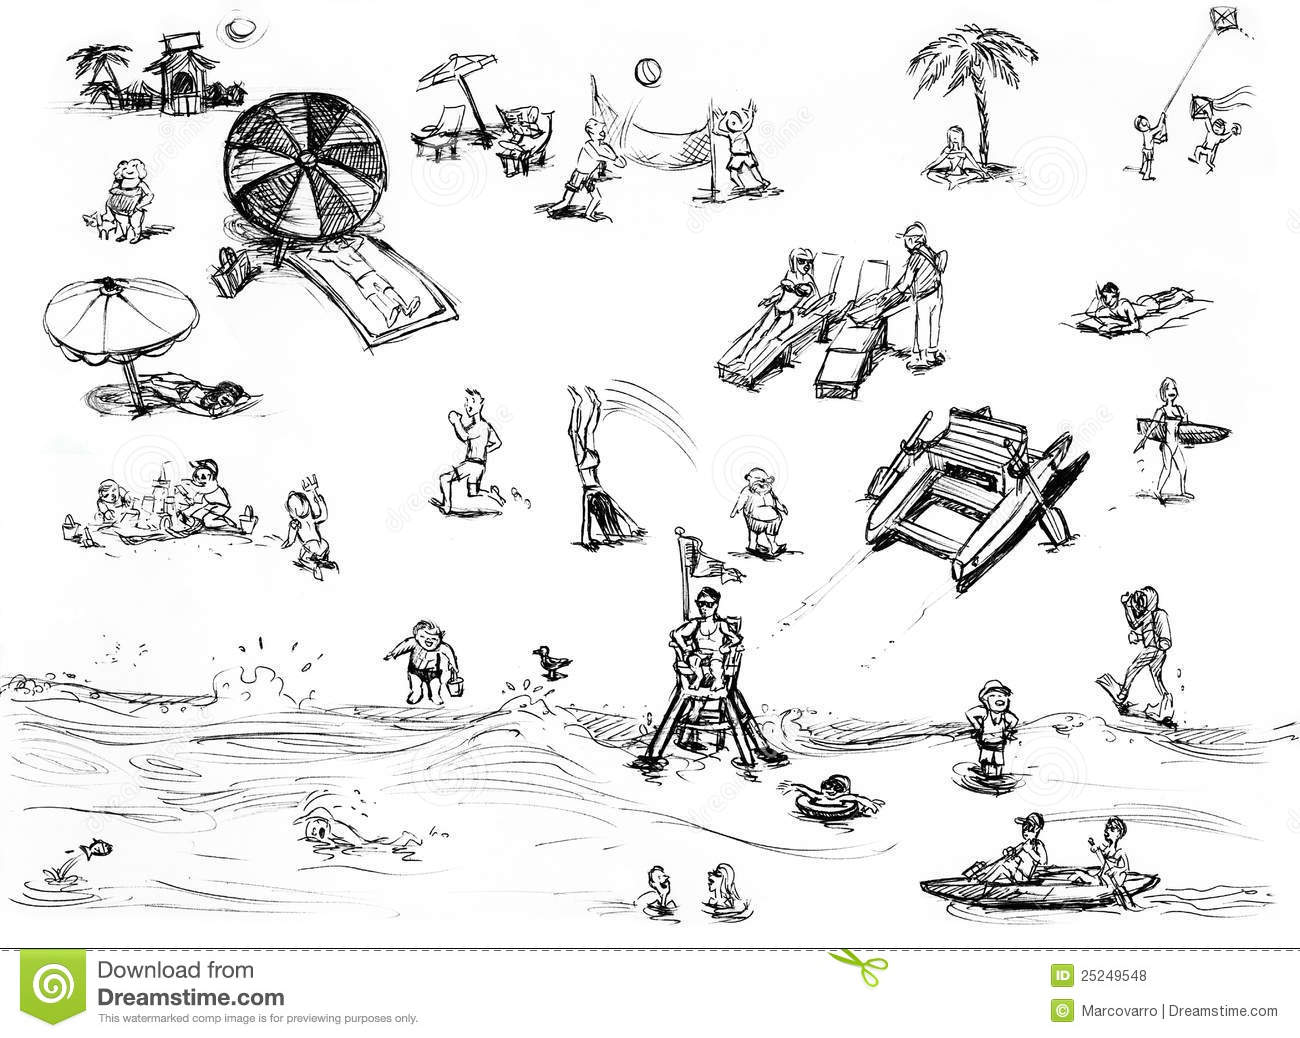 Beach scene clipart black and white clipart royalty free Beach Scene Clipart Black And White (86+ images in Collection) Page 2 clipart royalty free